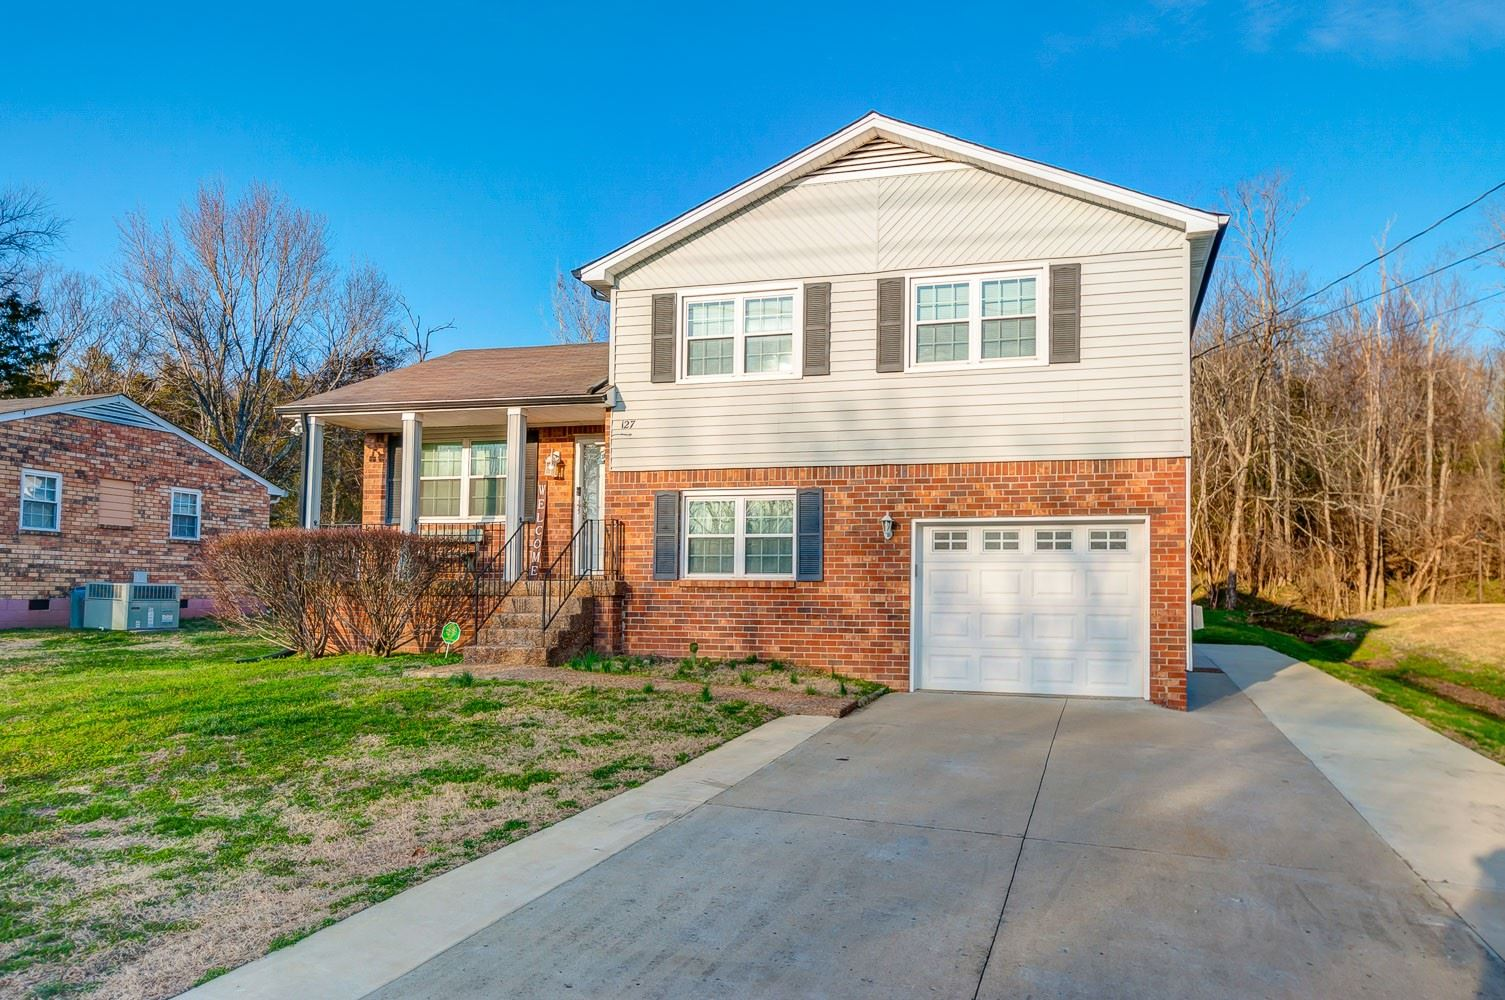 Photo of 127 Arsenal Dr, Franklin, TN 37064 (MLS # 2177931)